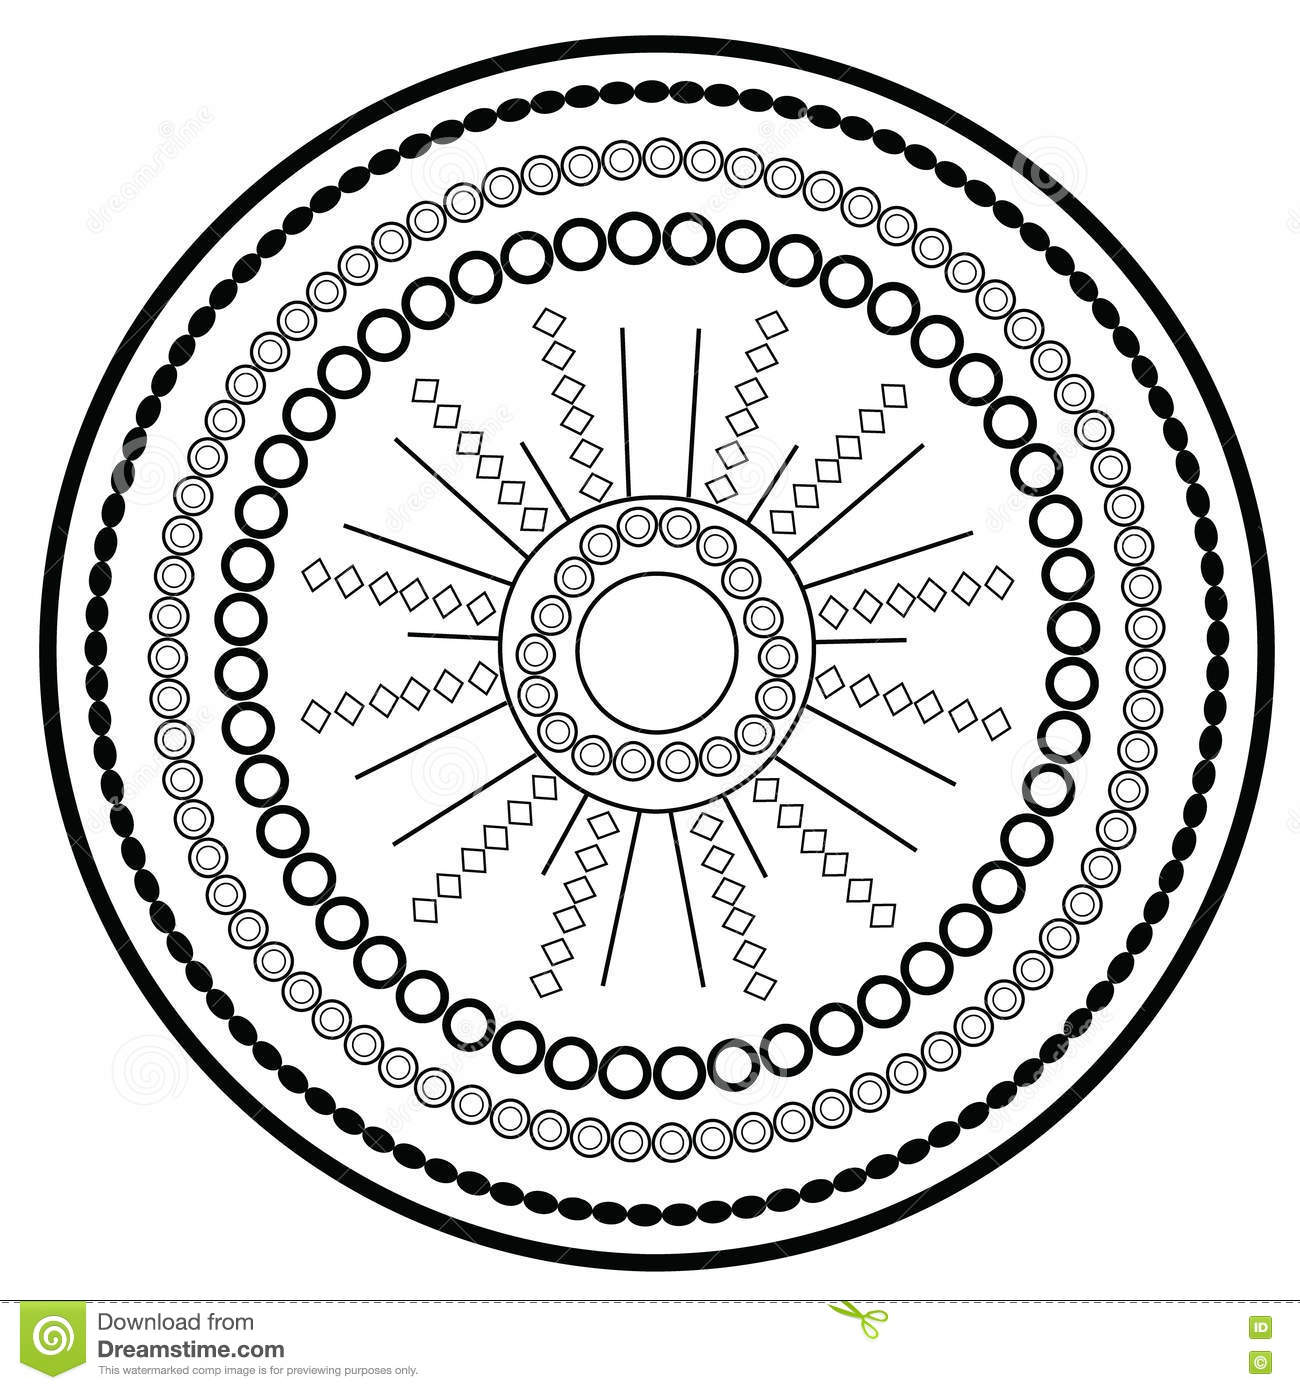 Relaxing coloring page with mandala for kids and adults art therapy meditation coloring book